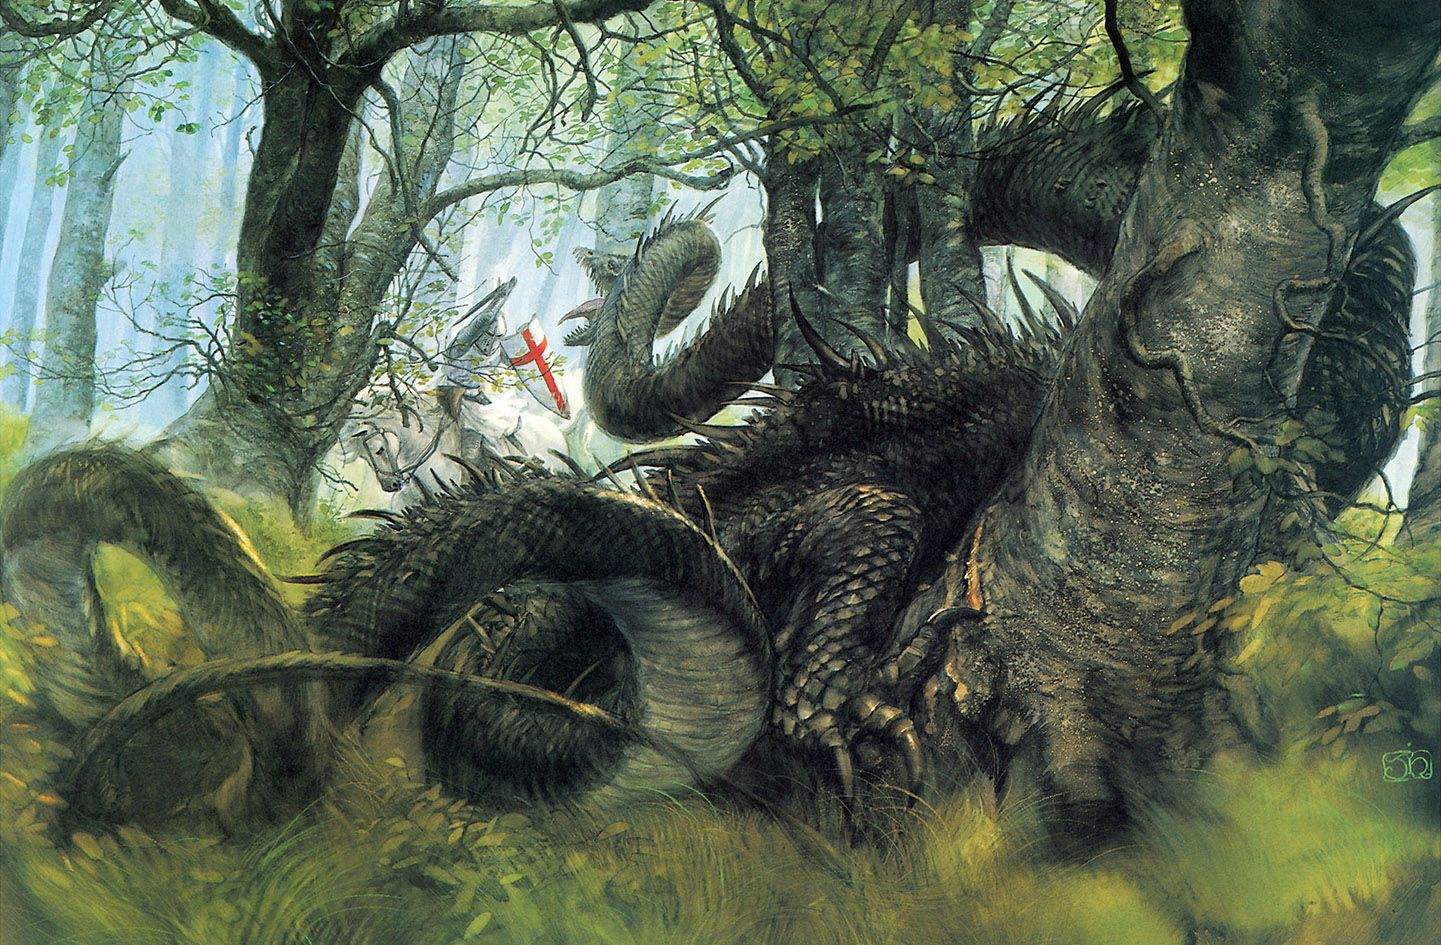 Gladius 0455 John Howe Saint George And The Dragon 1441x945